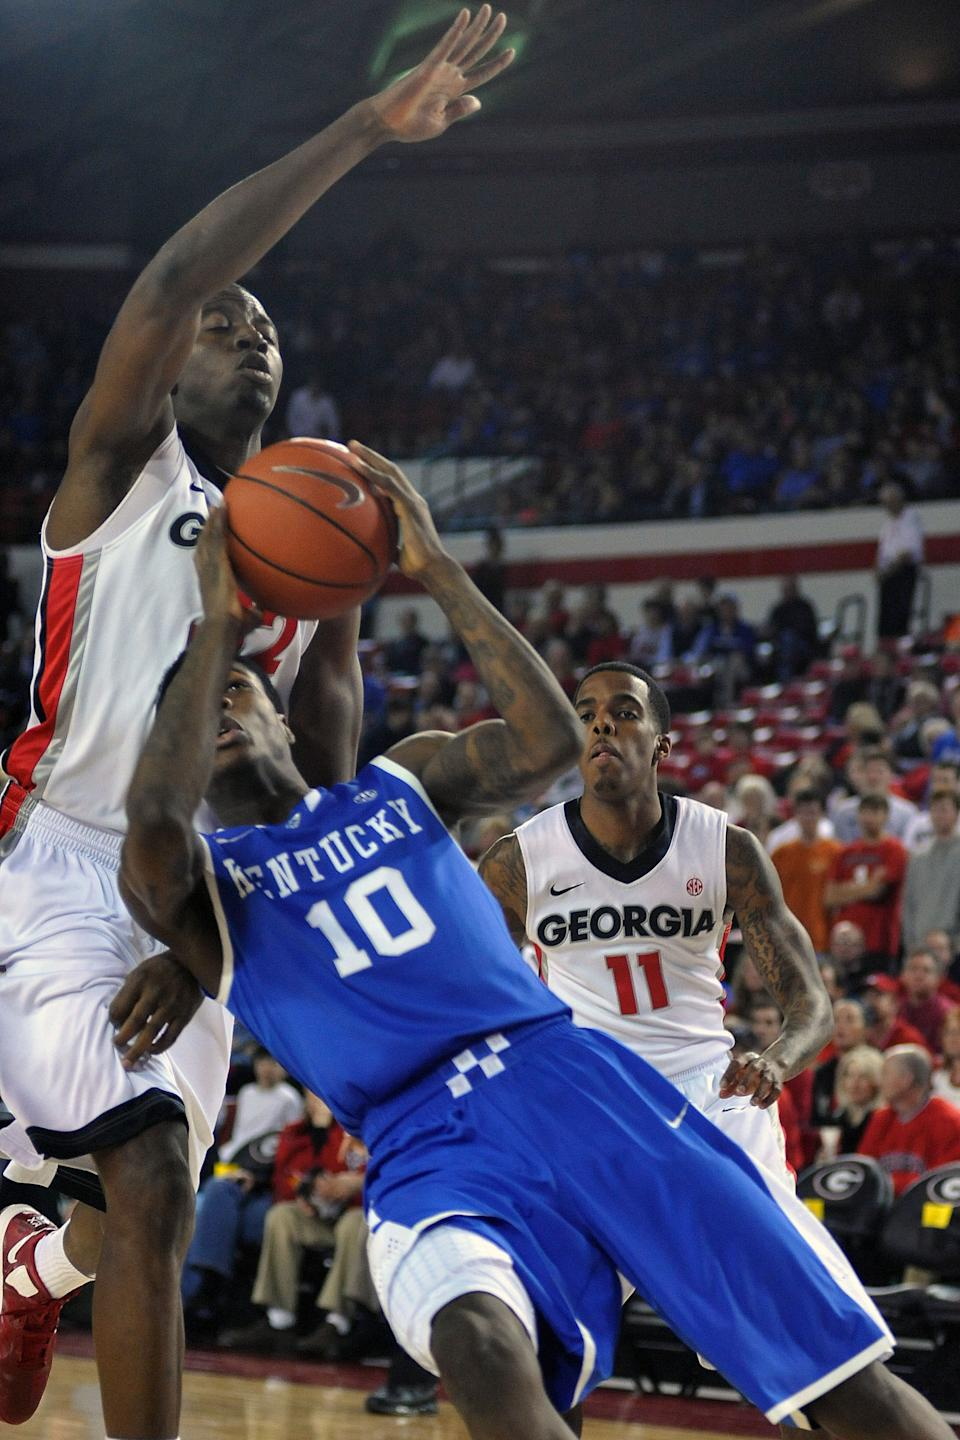 Kentucky guard Archie Goodwin (10) attempts to shoot while defended by Georgia forward/center John Florveus (32) during the first half of an NCAA college basketball game in Athens, Ga., Thursday, March 7, 2013. (AP Photo/The Athens Banner-Herald, AJ Reynolds)  MAGAZINES OUT; MANDATORY CREDIT; TV OUT